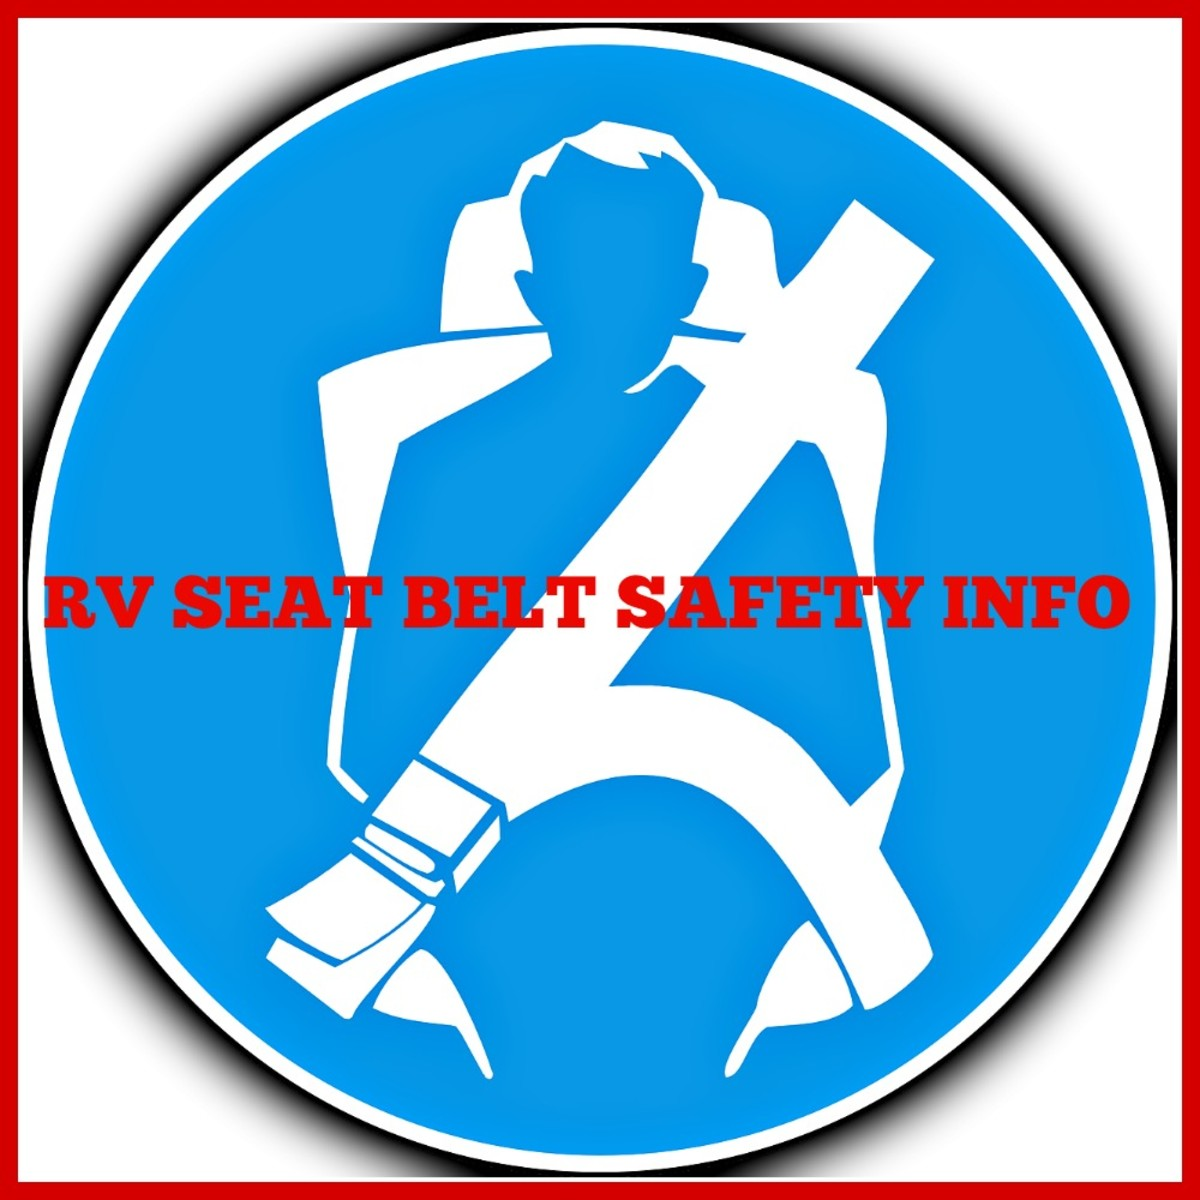 Important information for RVers about seat belt safety issues.